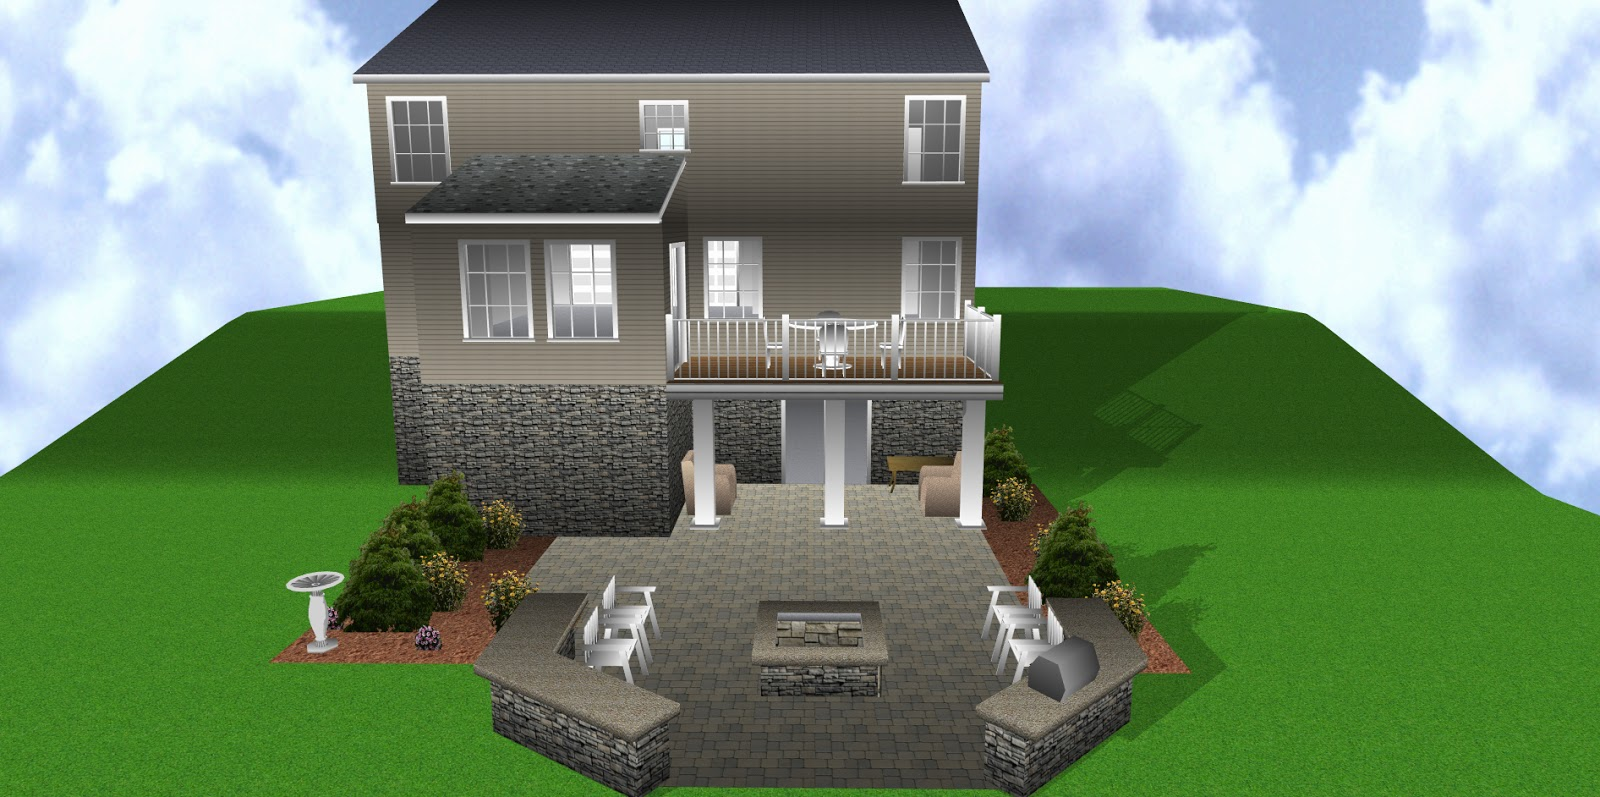 Sienna model home